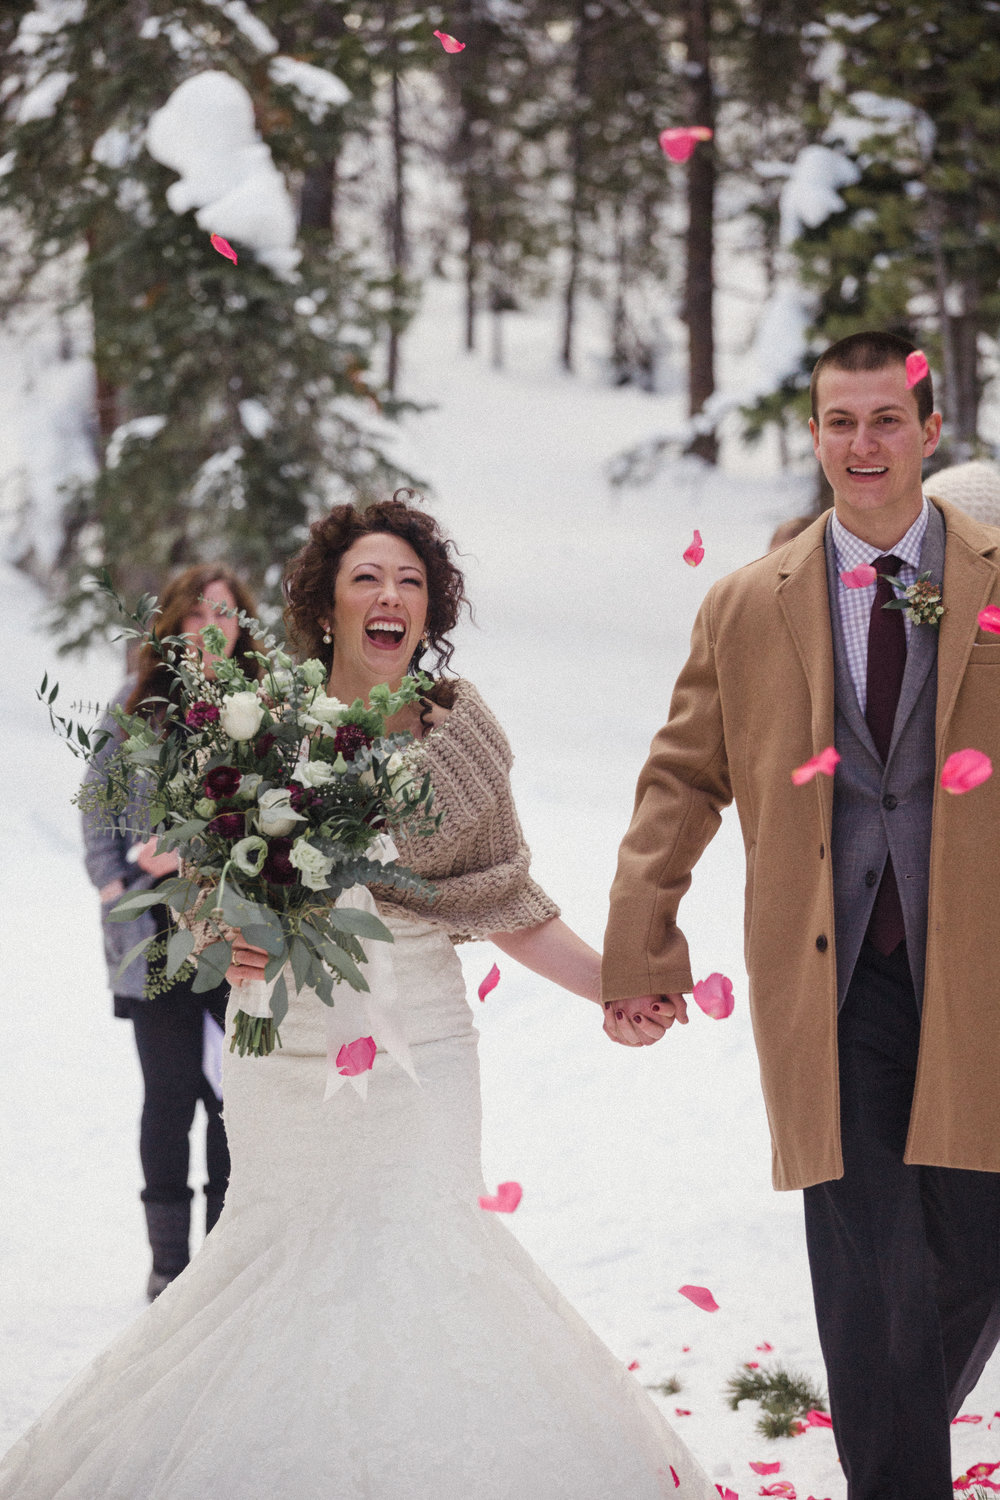 rose-petals-wedding-winter-park